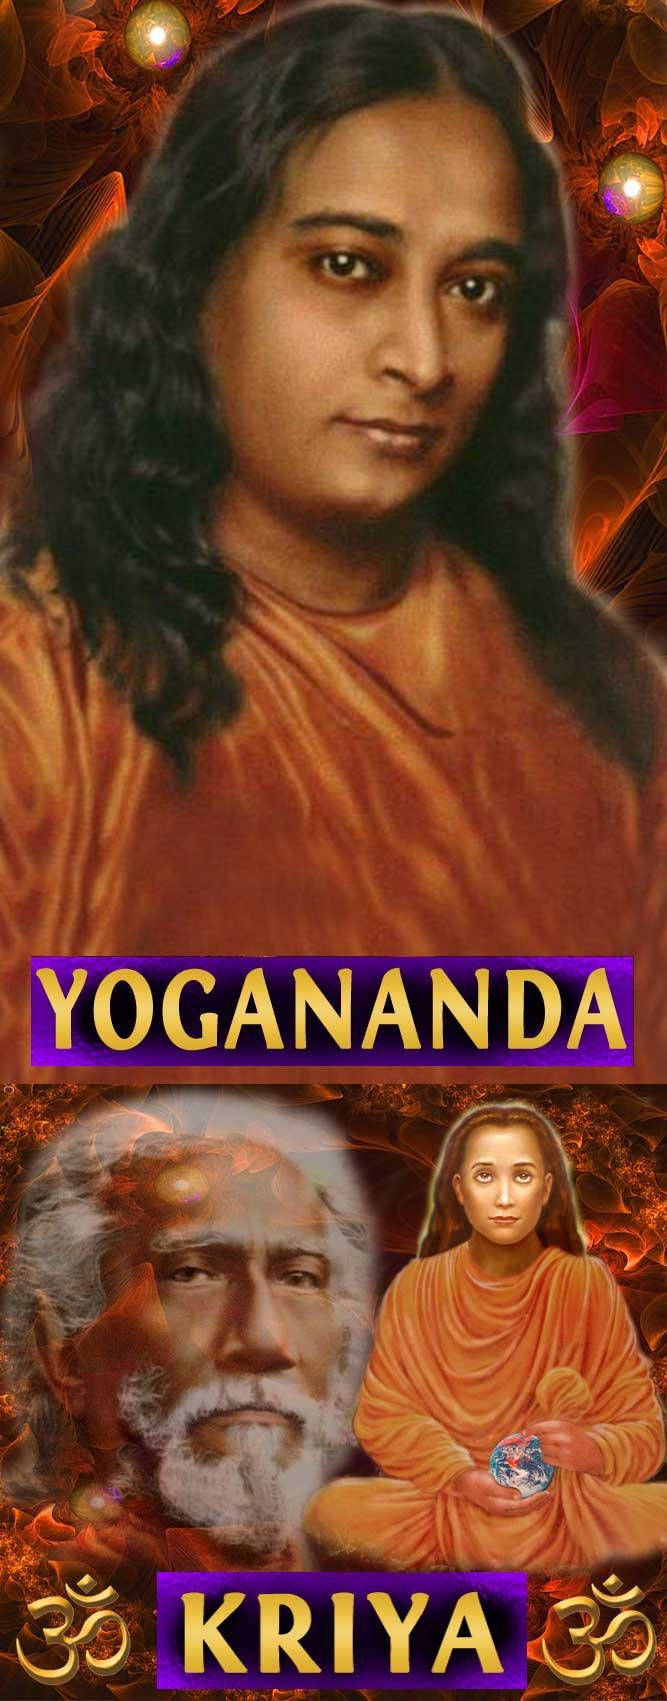 """This has been my profile picture on Facebook, Beloved Teacher Yogananda, well known by most spiritual seekers, """"Autobiography of a Yogi"""" is his famous book and I recommend it fully if you have not read it yet, below in the picture on the left is Yogananda's guru Sri Yukteswar and on the right side you see Mahavatar Babaji , Mahavatar Babaji is an Ascended Master, he is the founder of kriya yoga."""